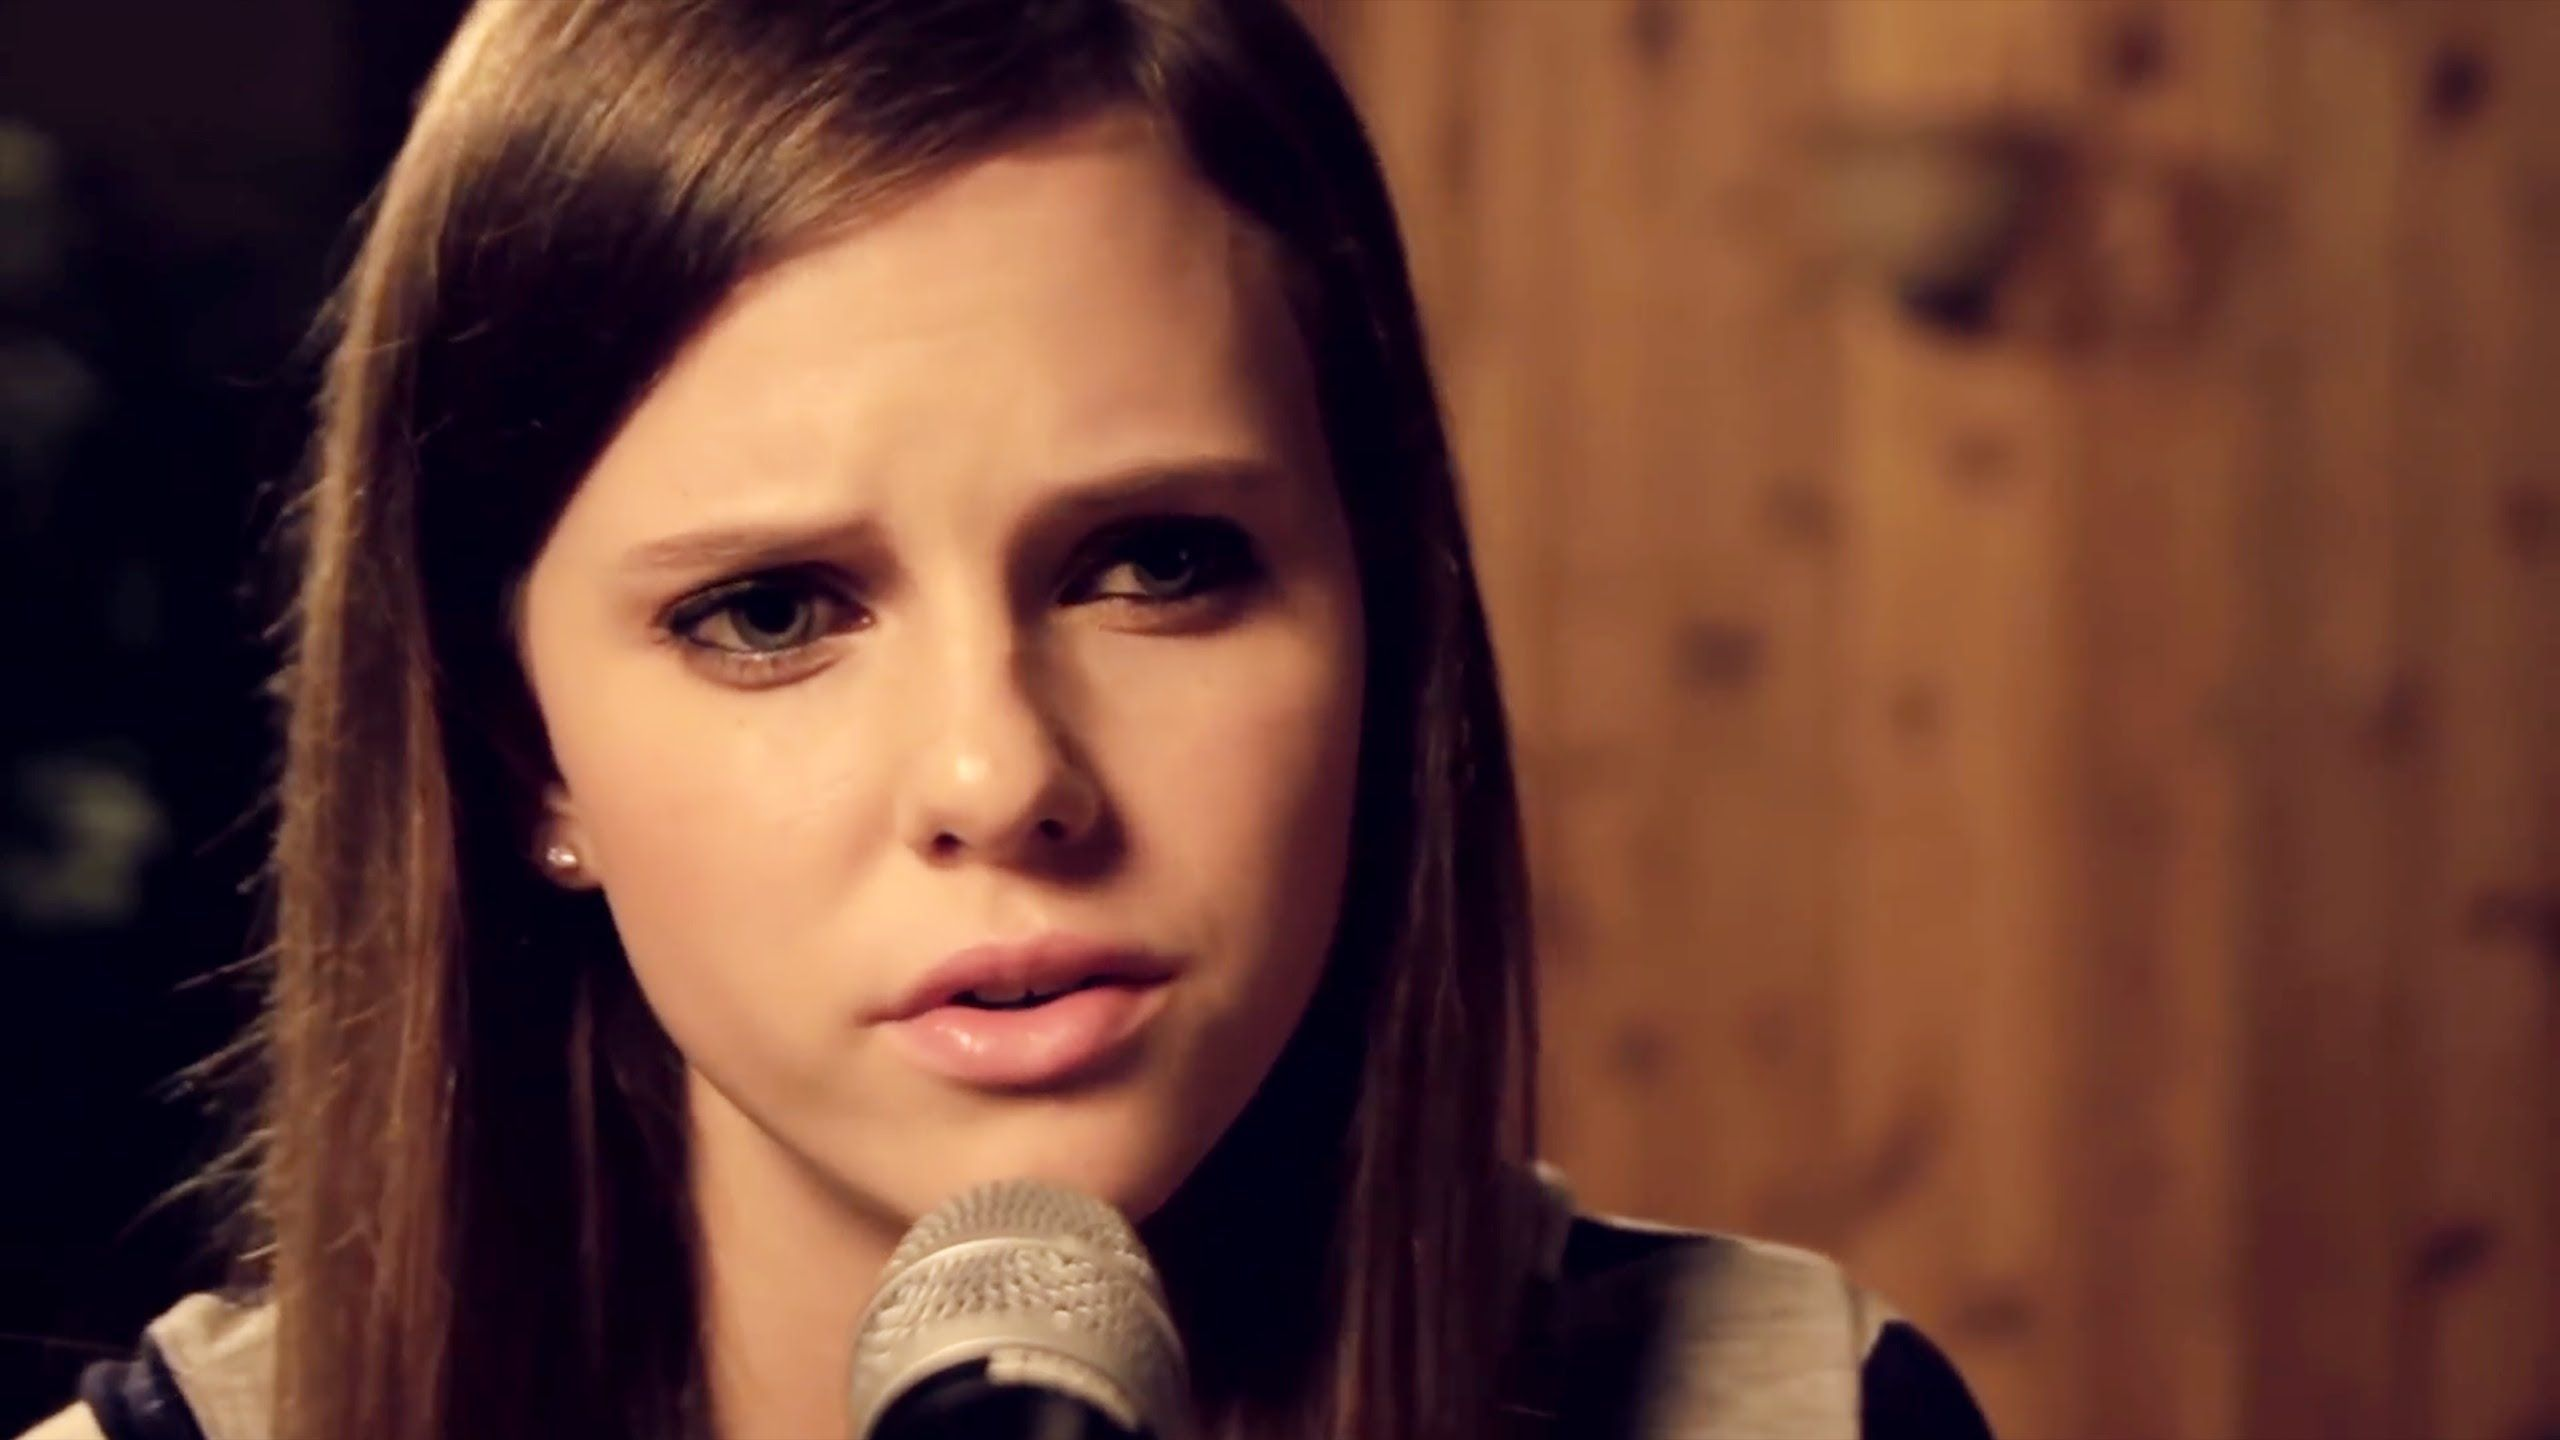 Video Tiffany Alvord nude (84 photo), Tits, Cleavage, Twitter, lingerie 2019